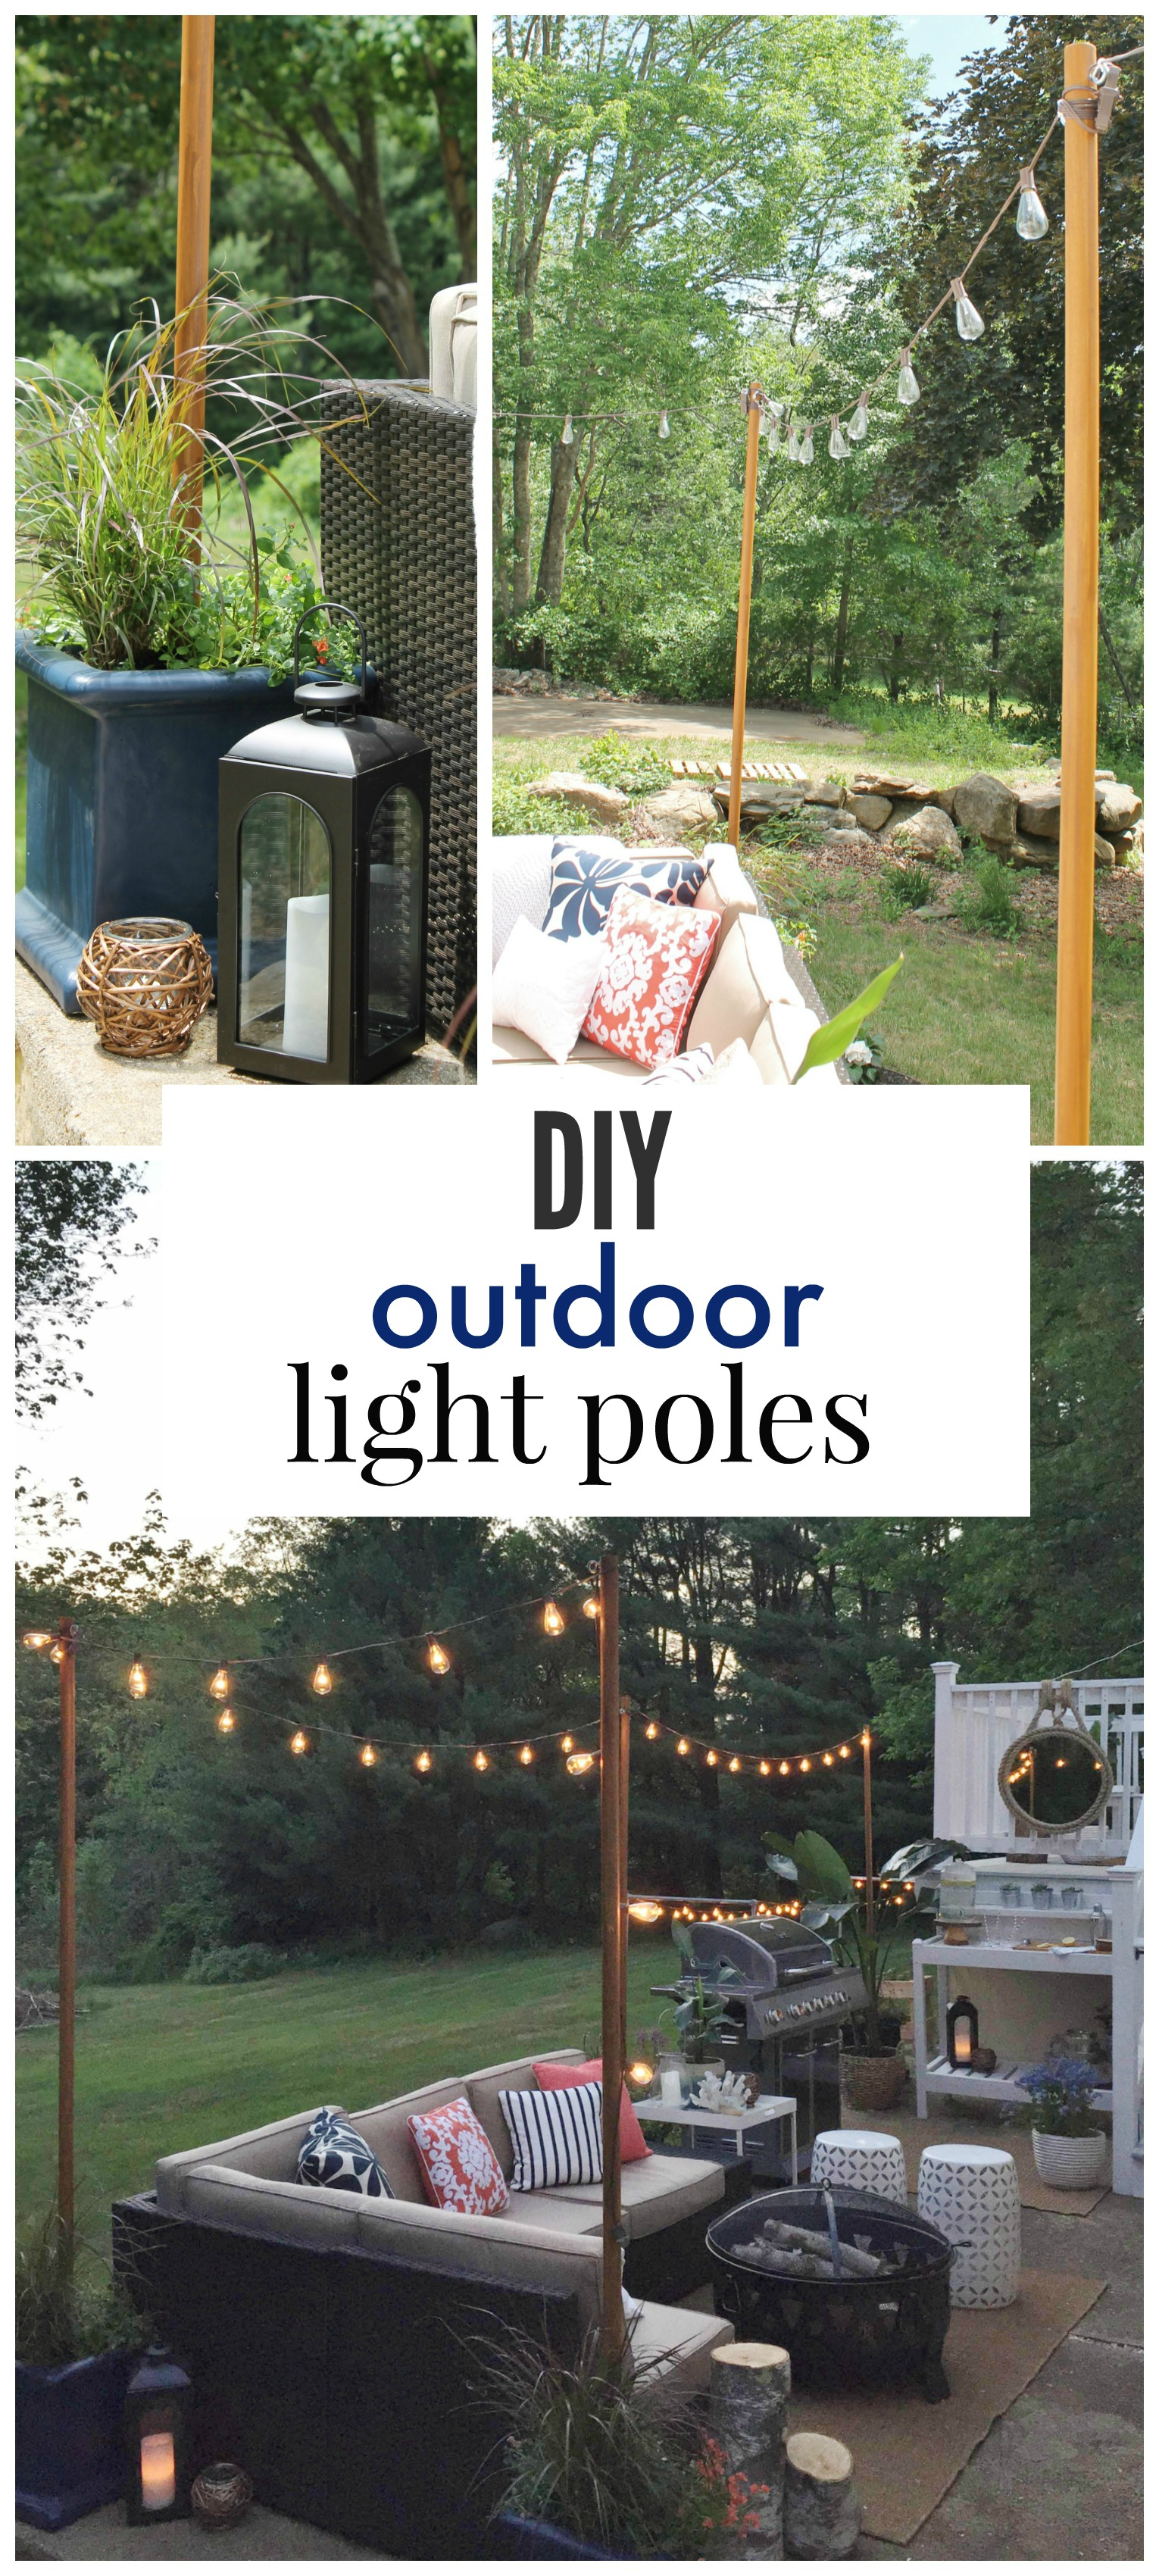 Outdoor Lighting Ideas Diy Diy outdoor light poles city farmhouse diy outdoor light poles everthing you need for outdoor lighting from lowes workwithnaturefo